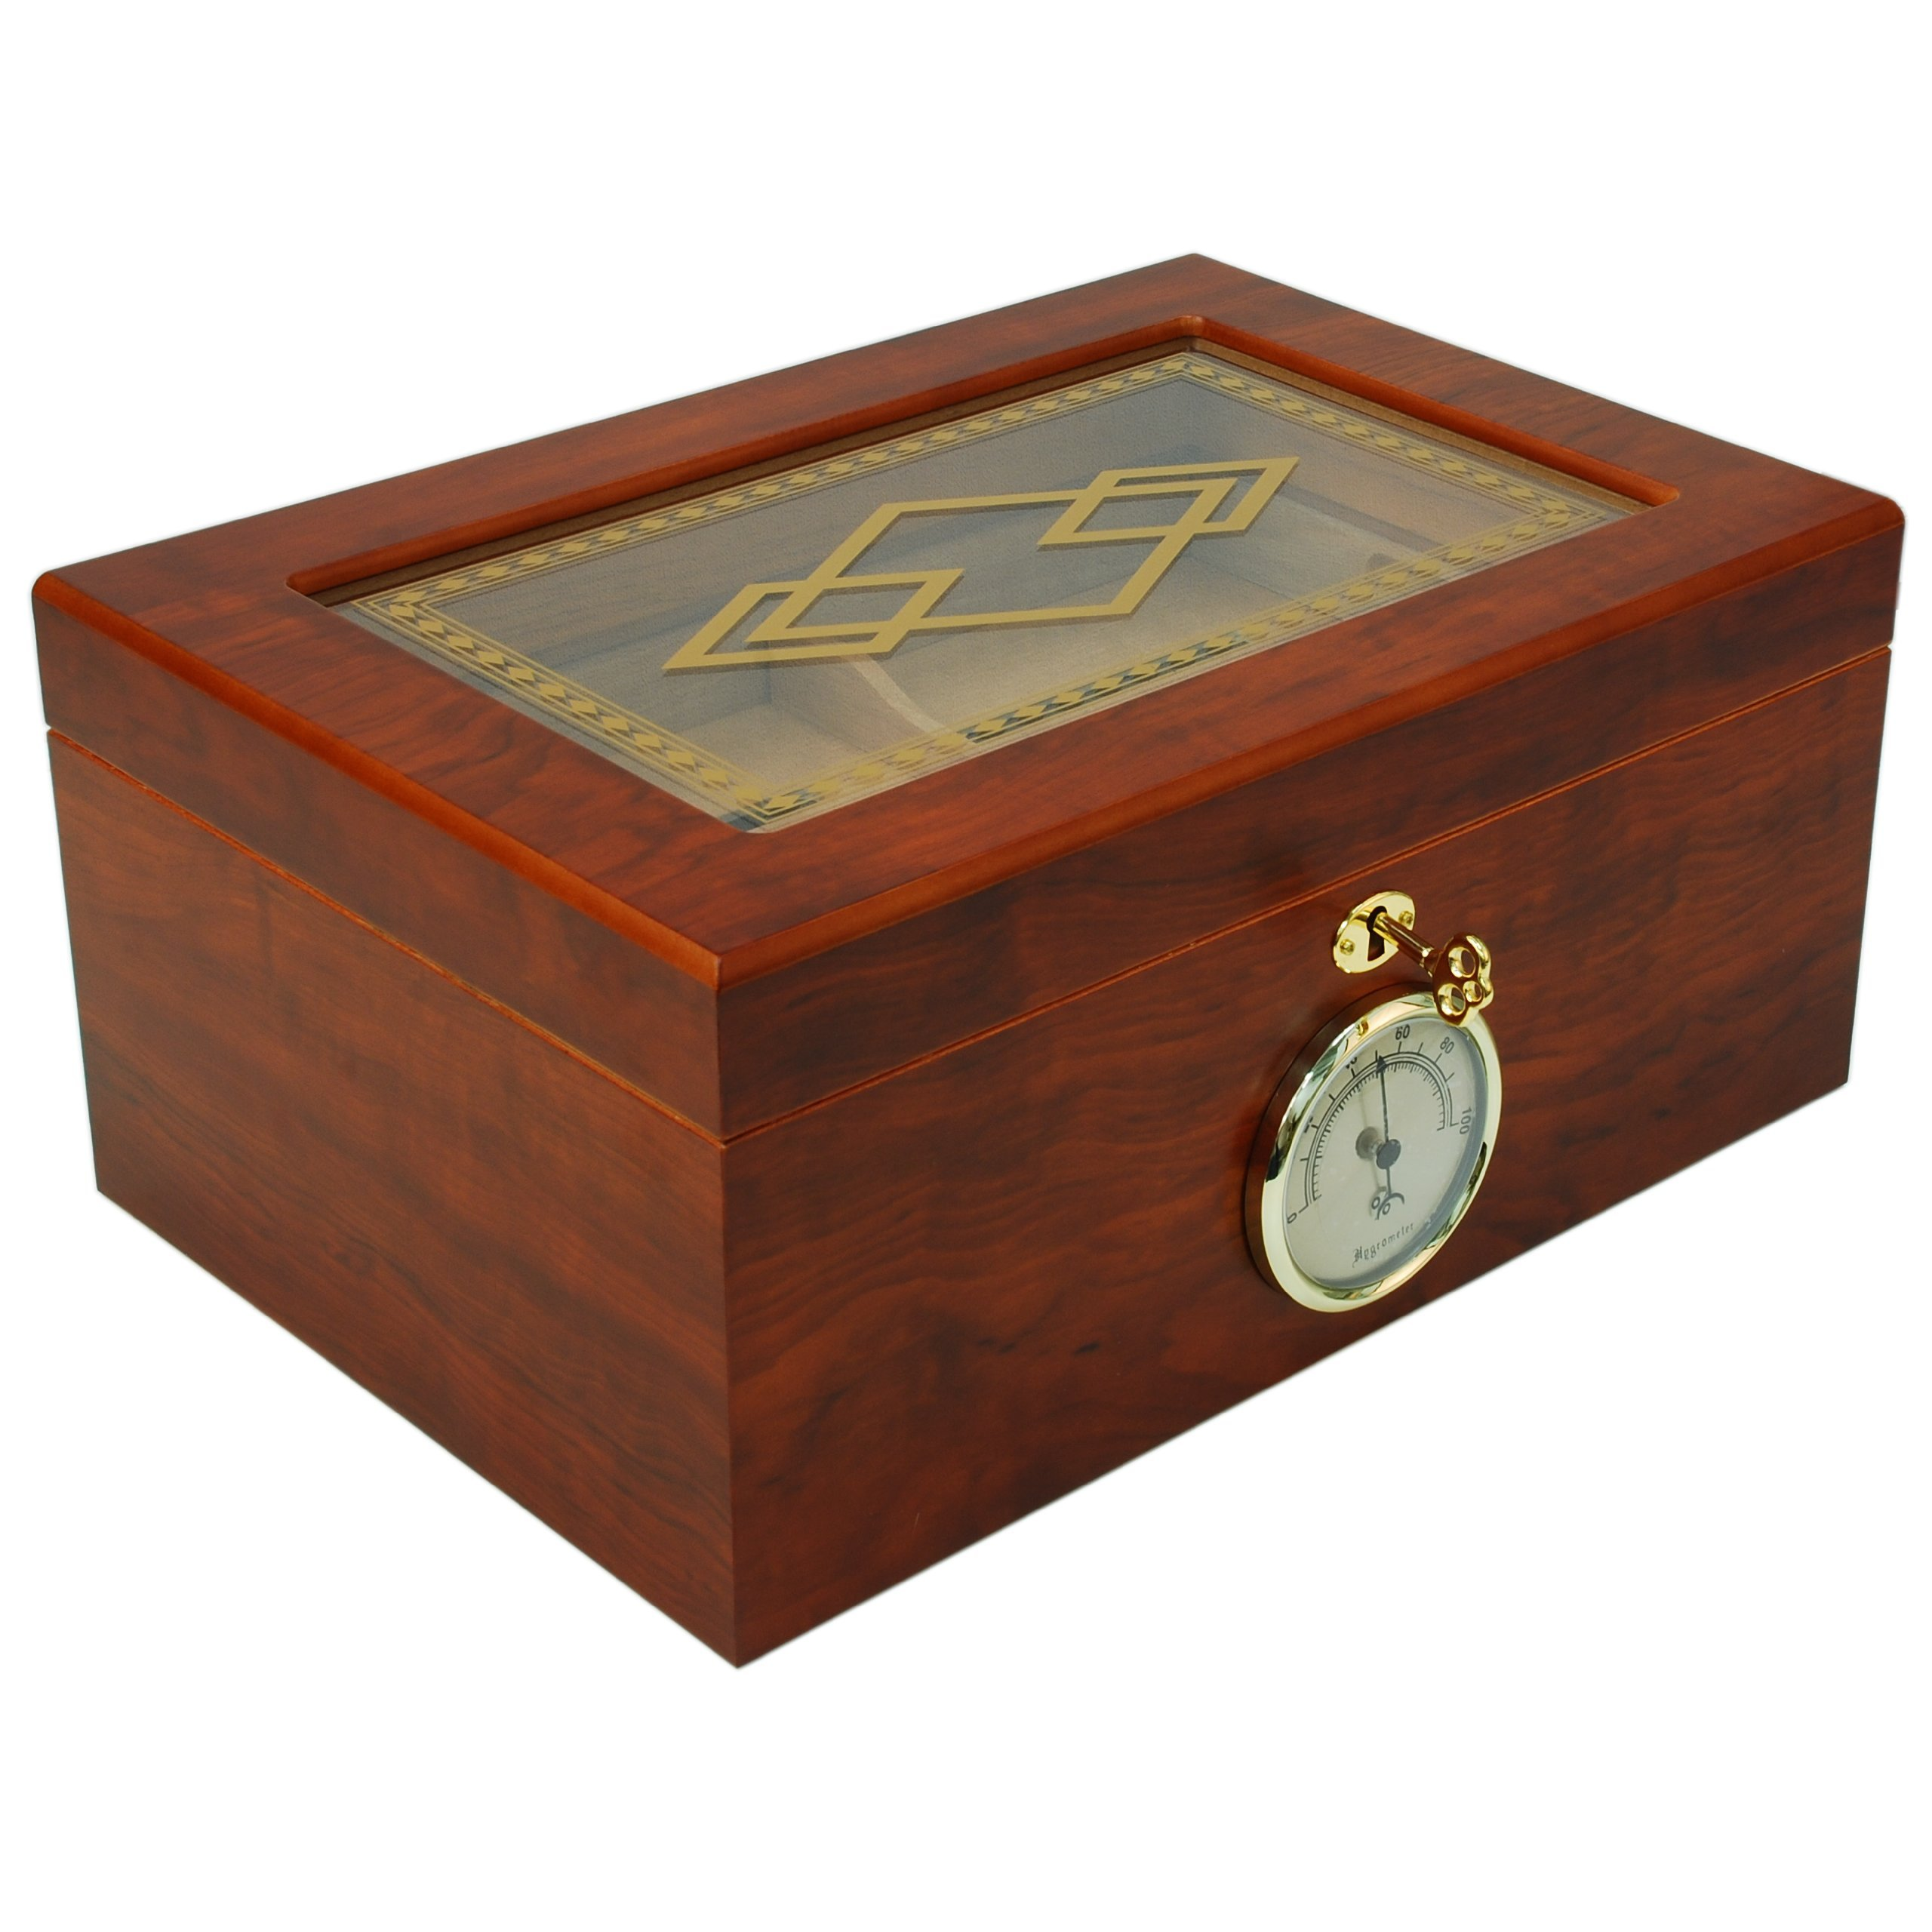 Orleans Group Bally Top Humidor with Embellished Glass